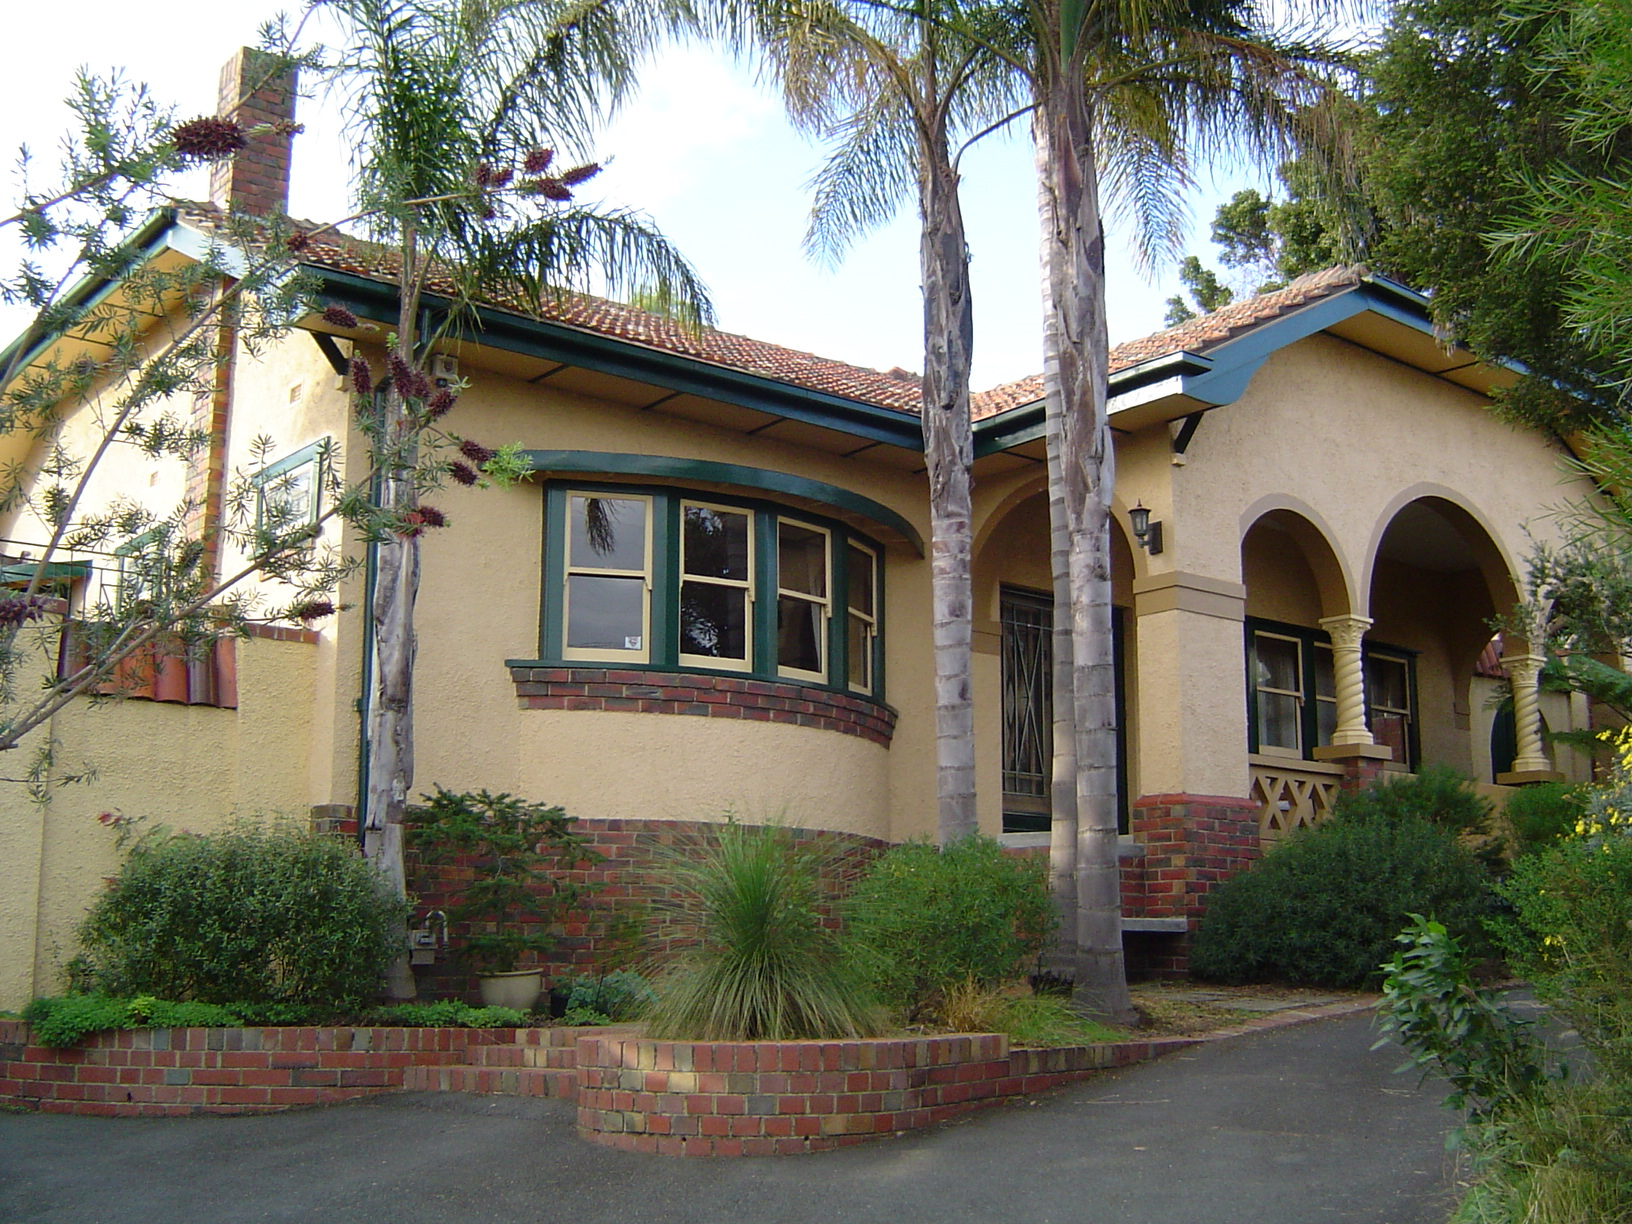 High Quality File:Spanish Mission Style House In Heidelberg, Victoria